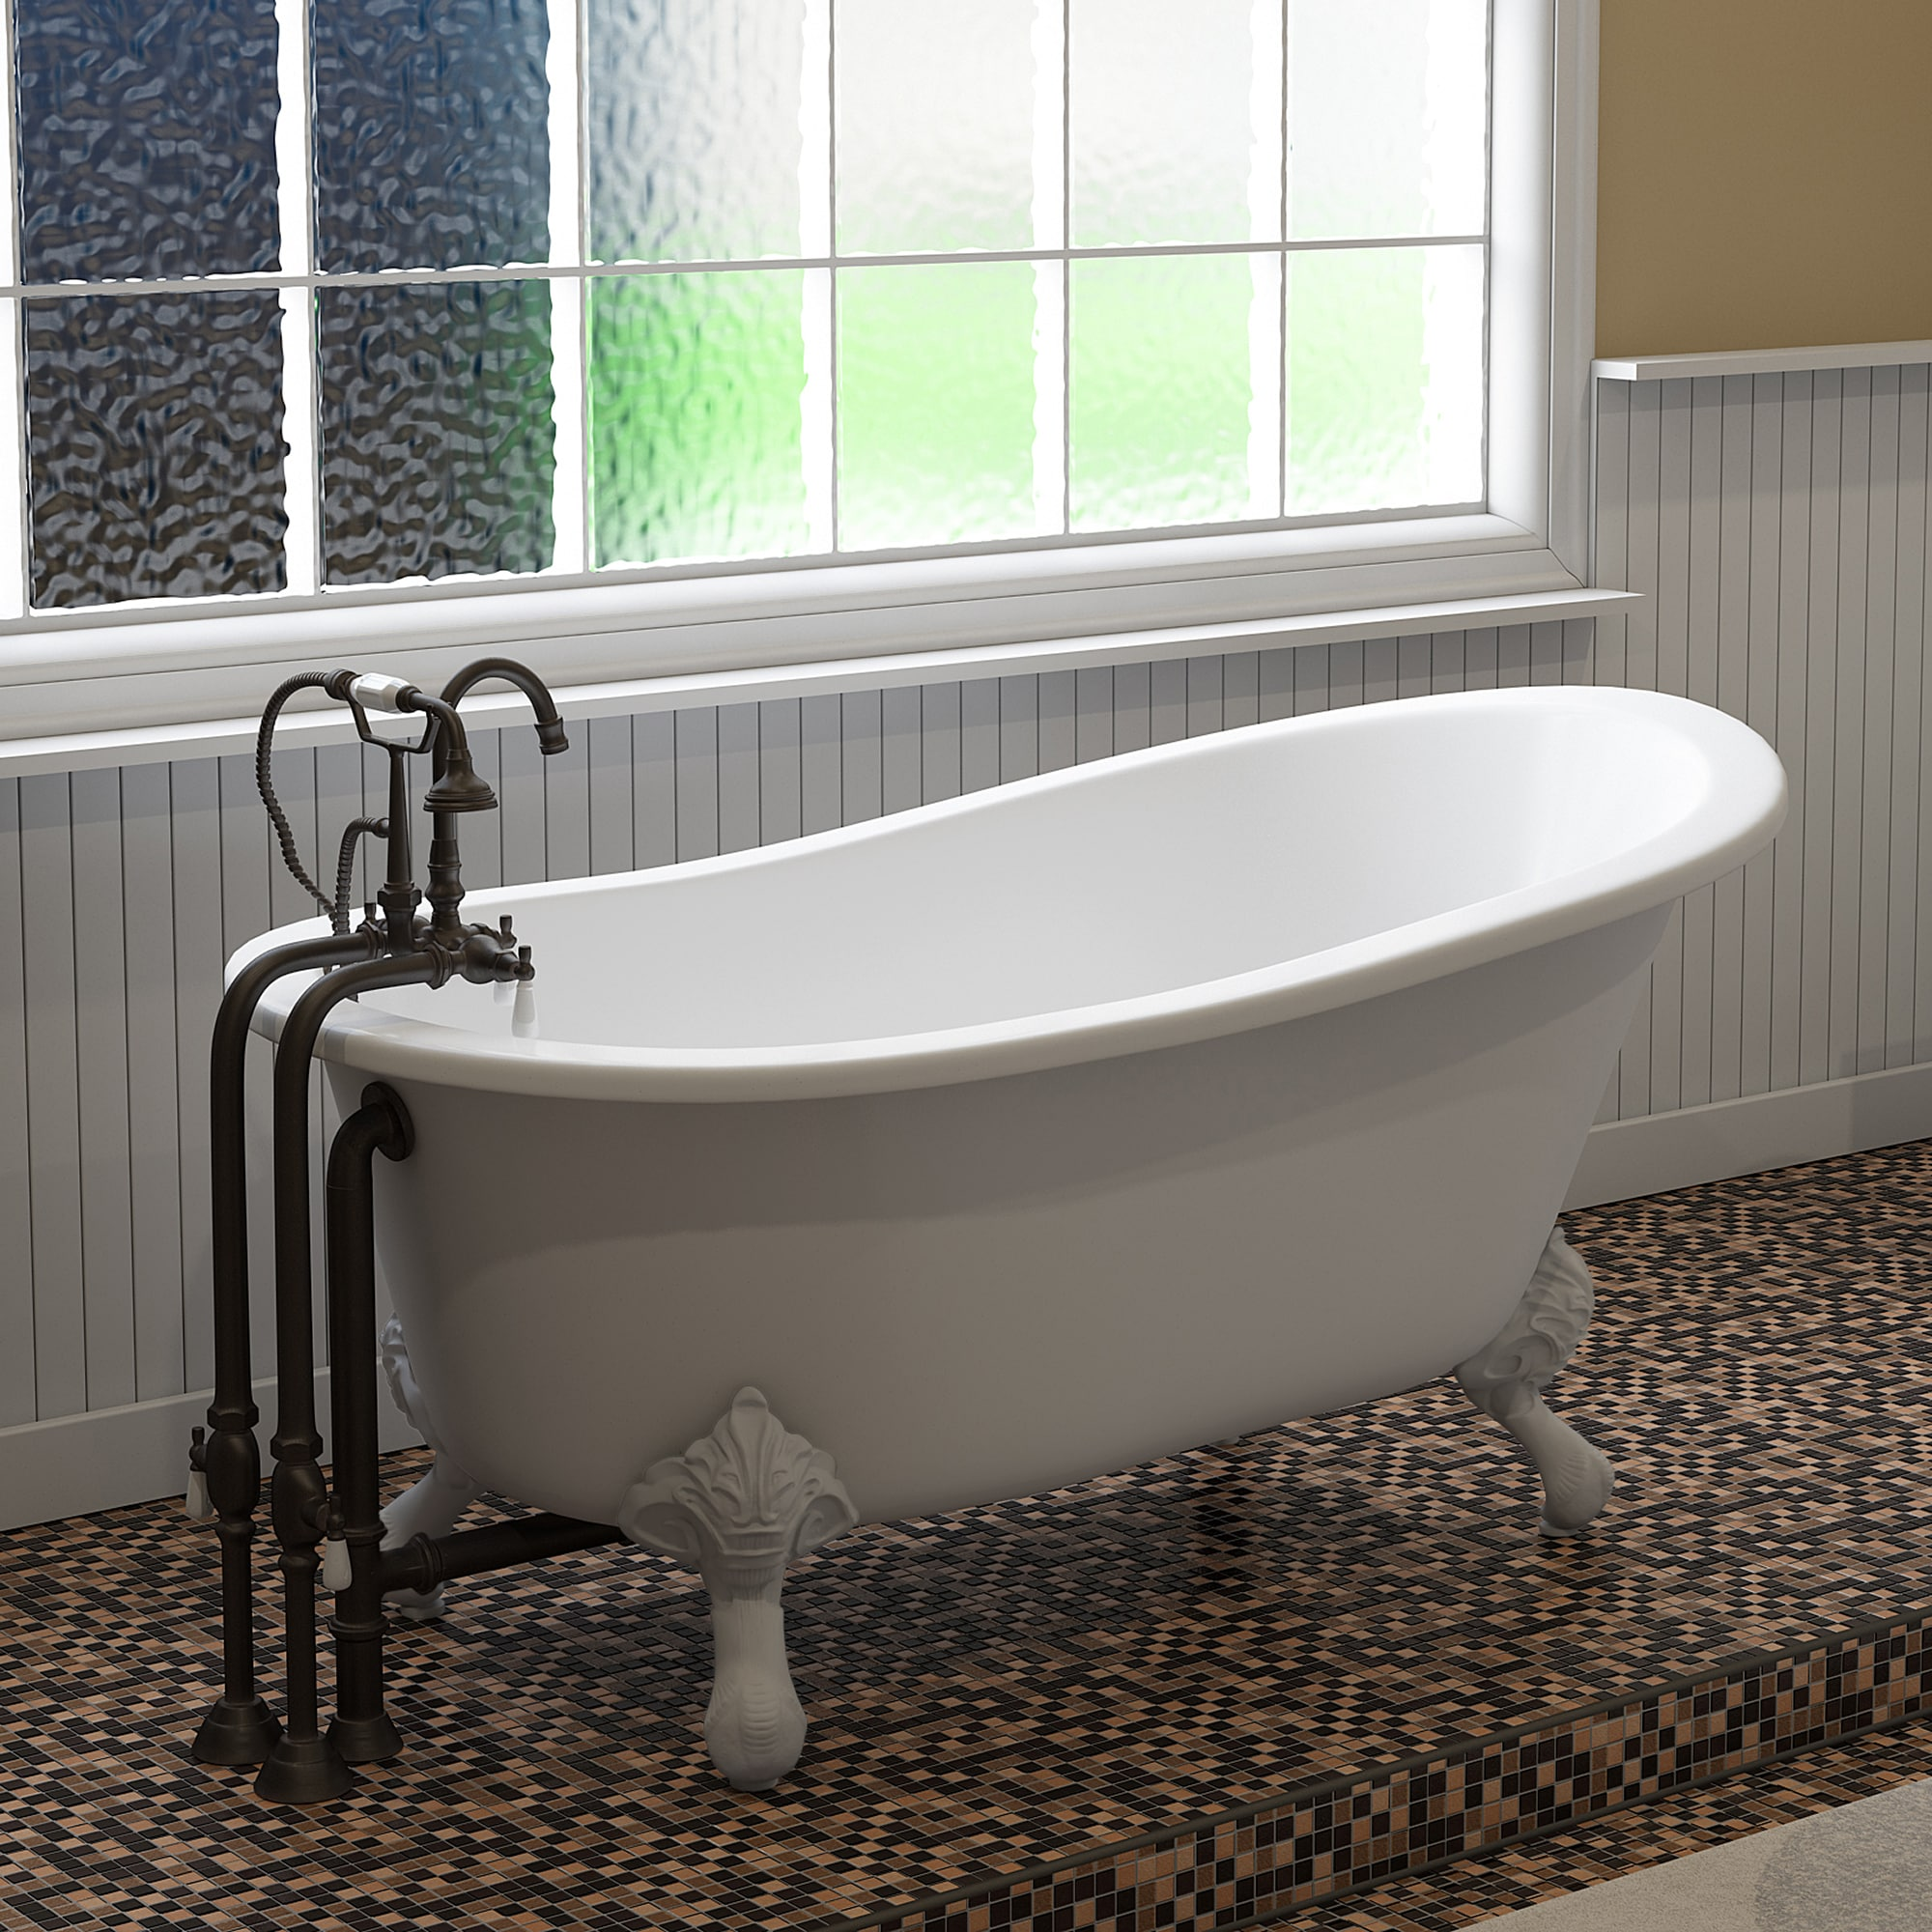 Cast Iron Slipper Clawfoot Tub 61 Quot X 30 Quot With Free